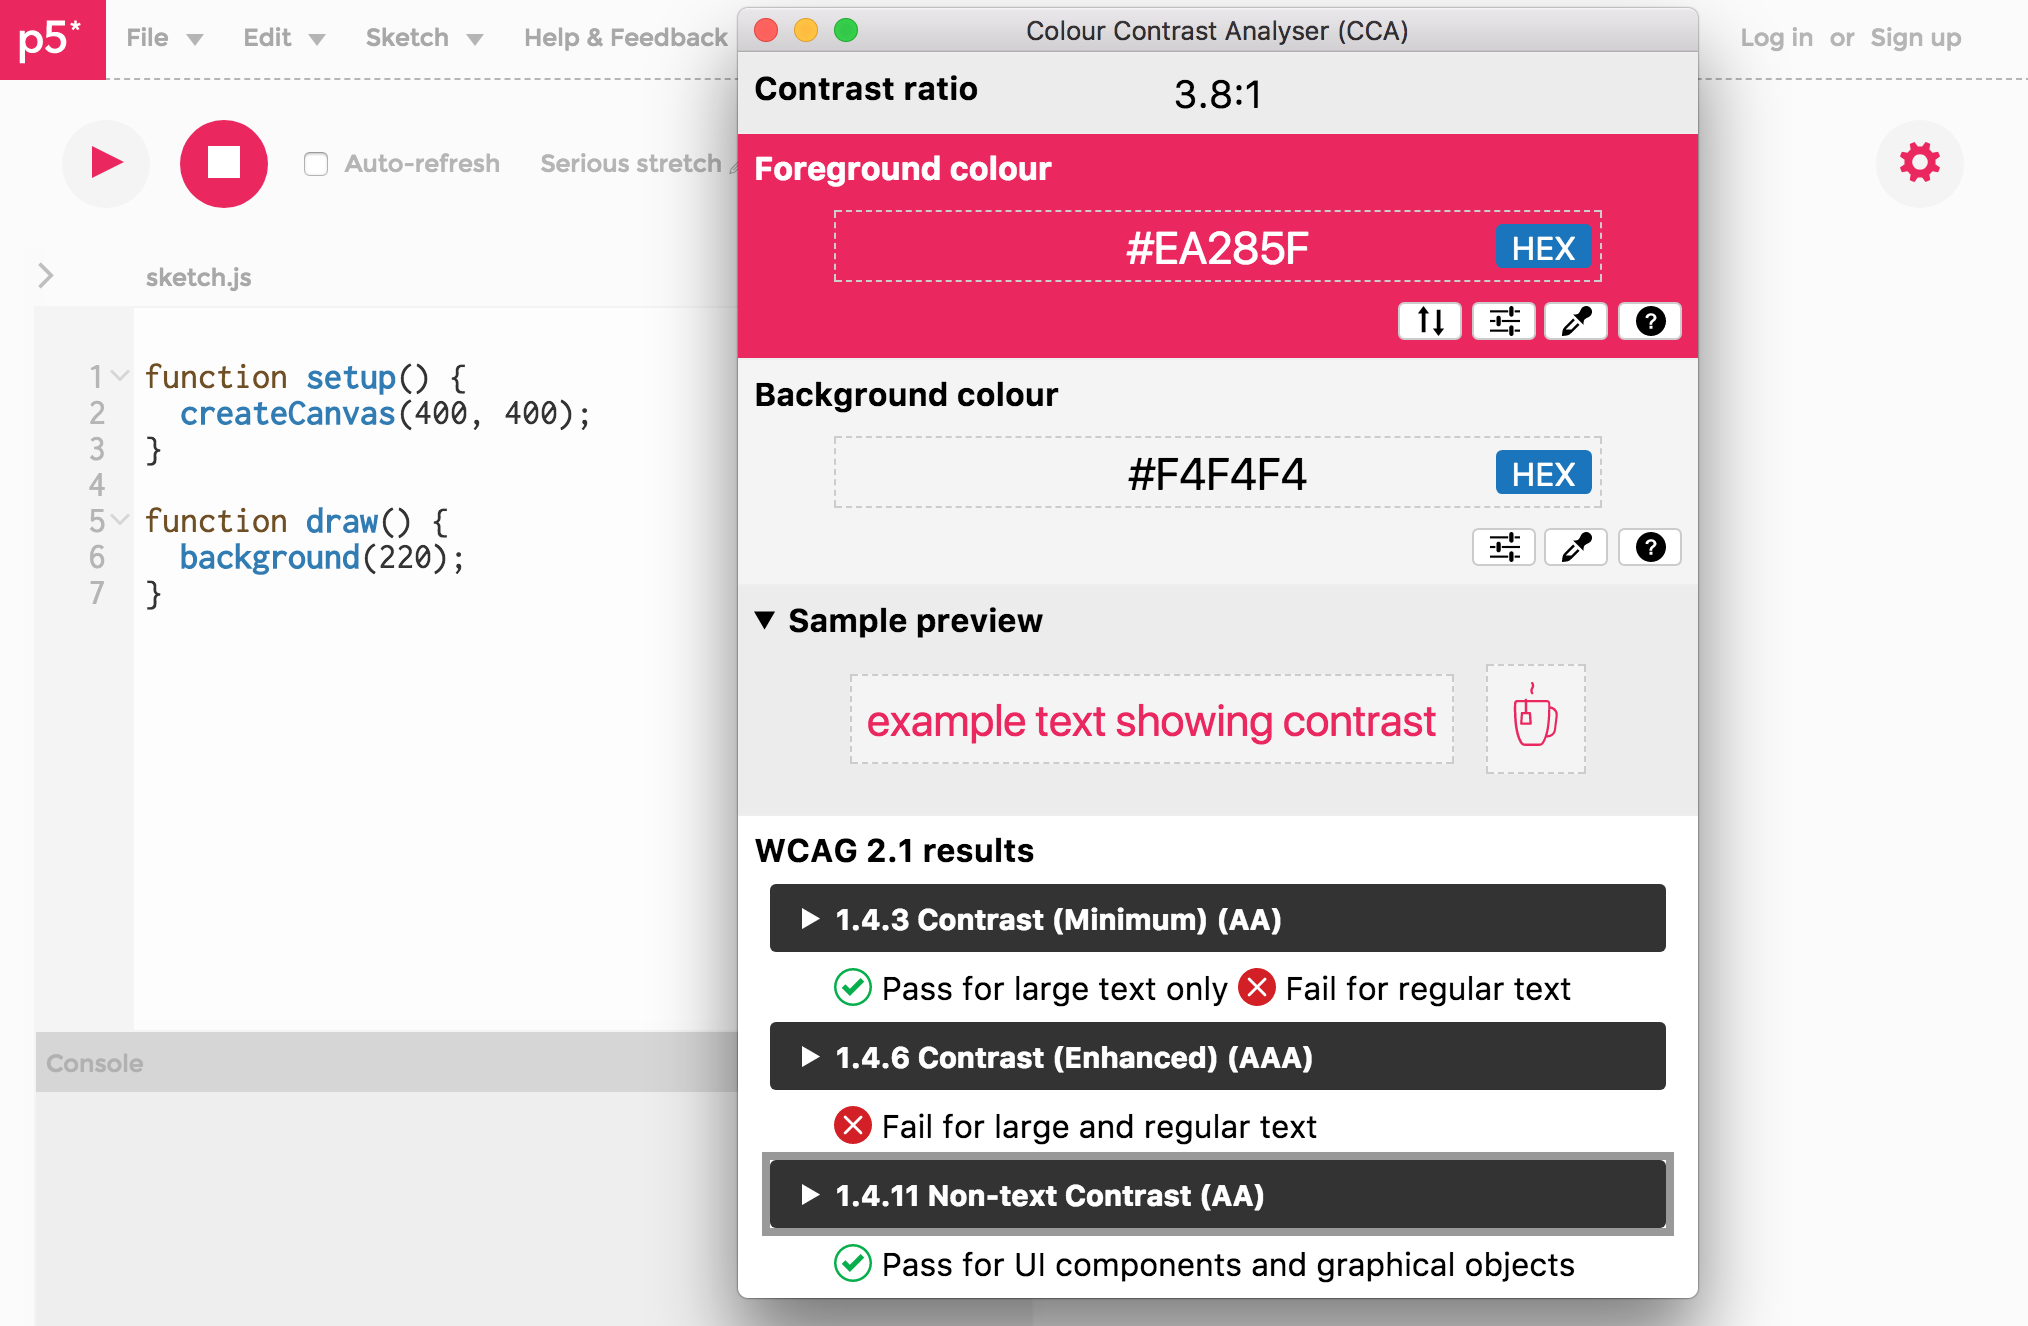 p5 web editor and use of Colour Contrast Analyser (CCA) for point color